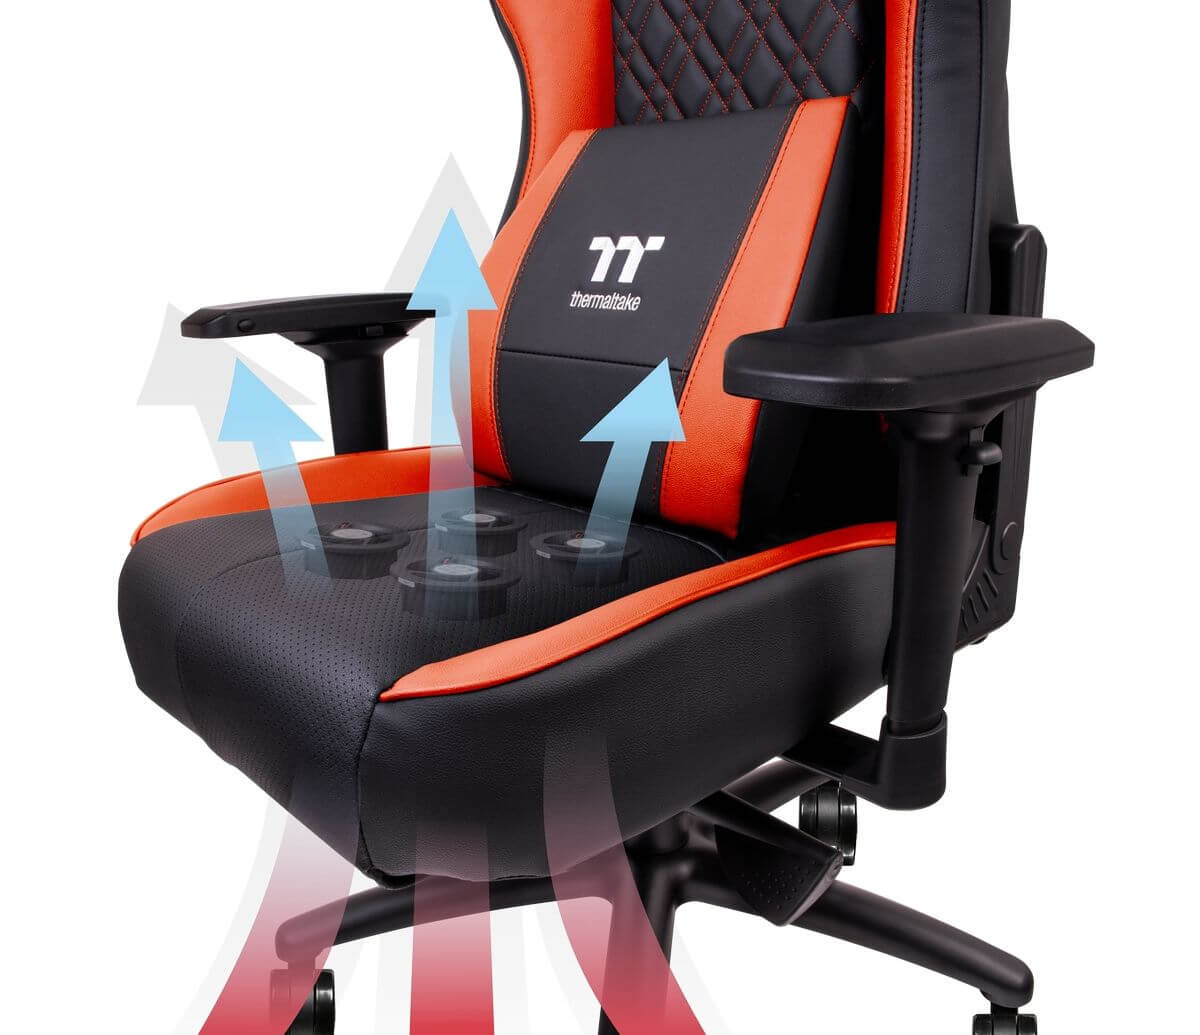 Thermaltake S New Gaming Chair Cools Your Butt With Four